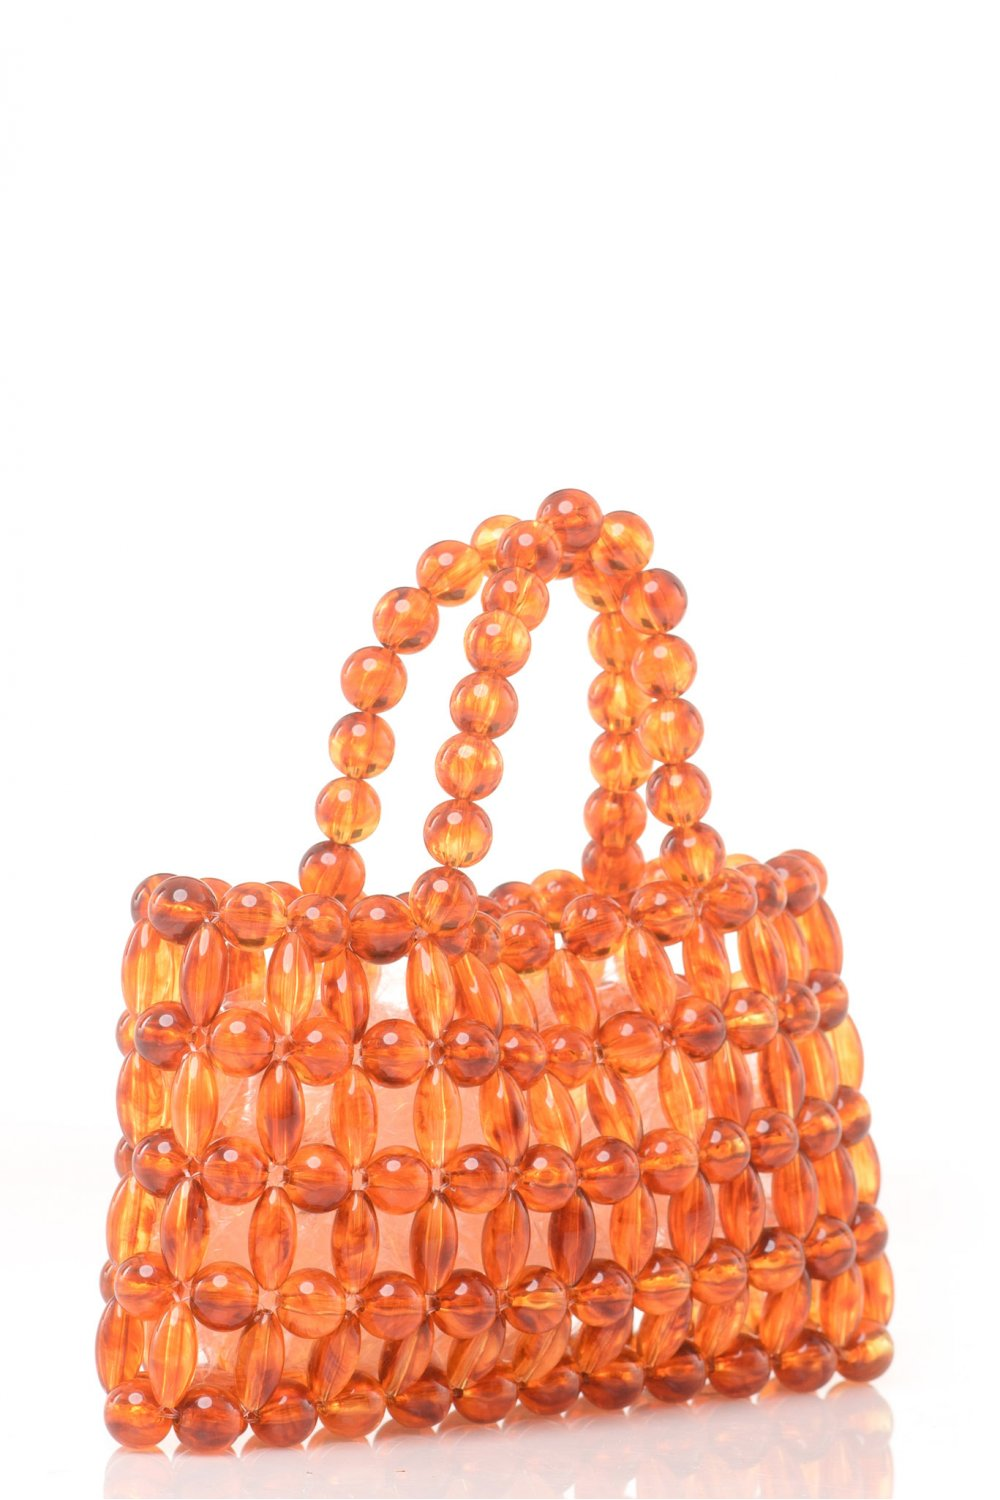 BAG WITH BROWN PLASTIC BEADS